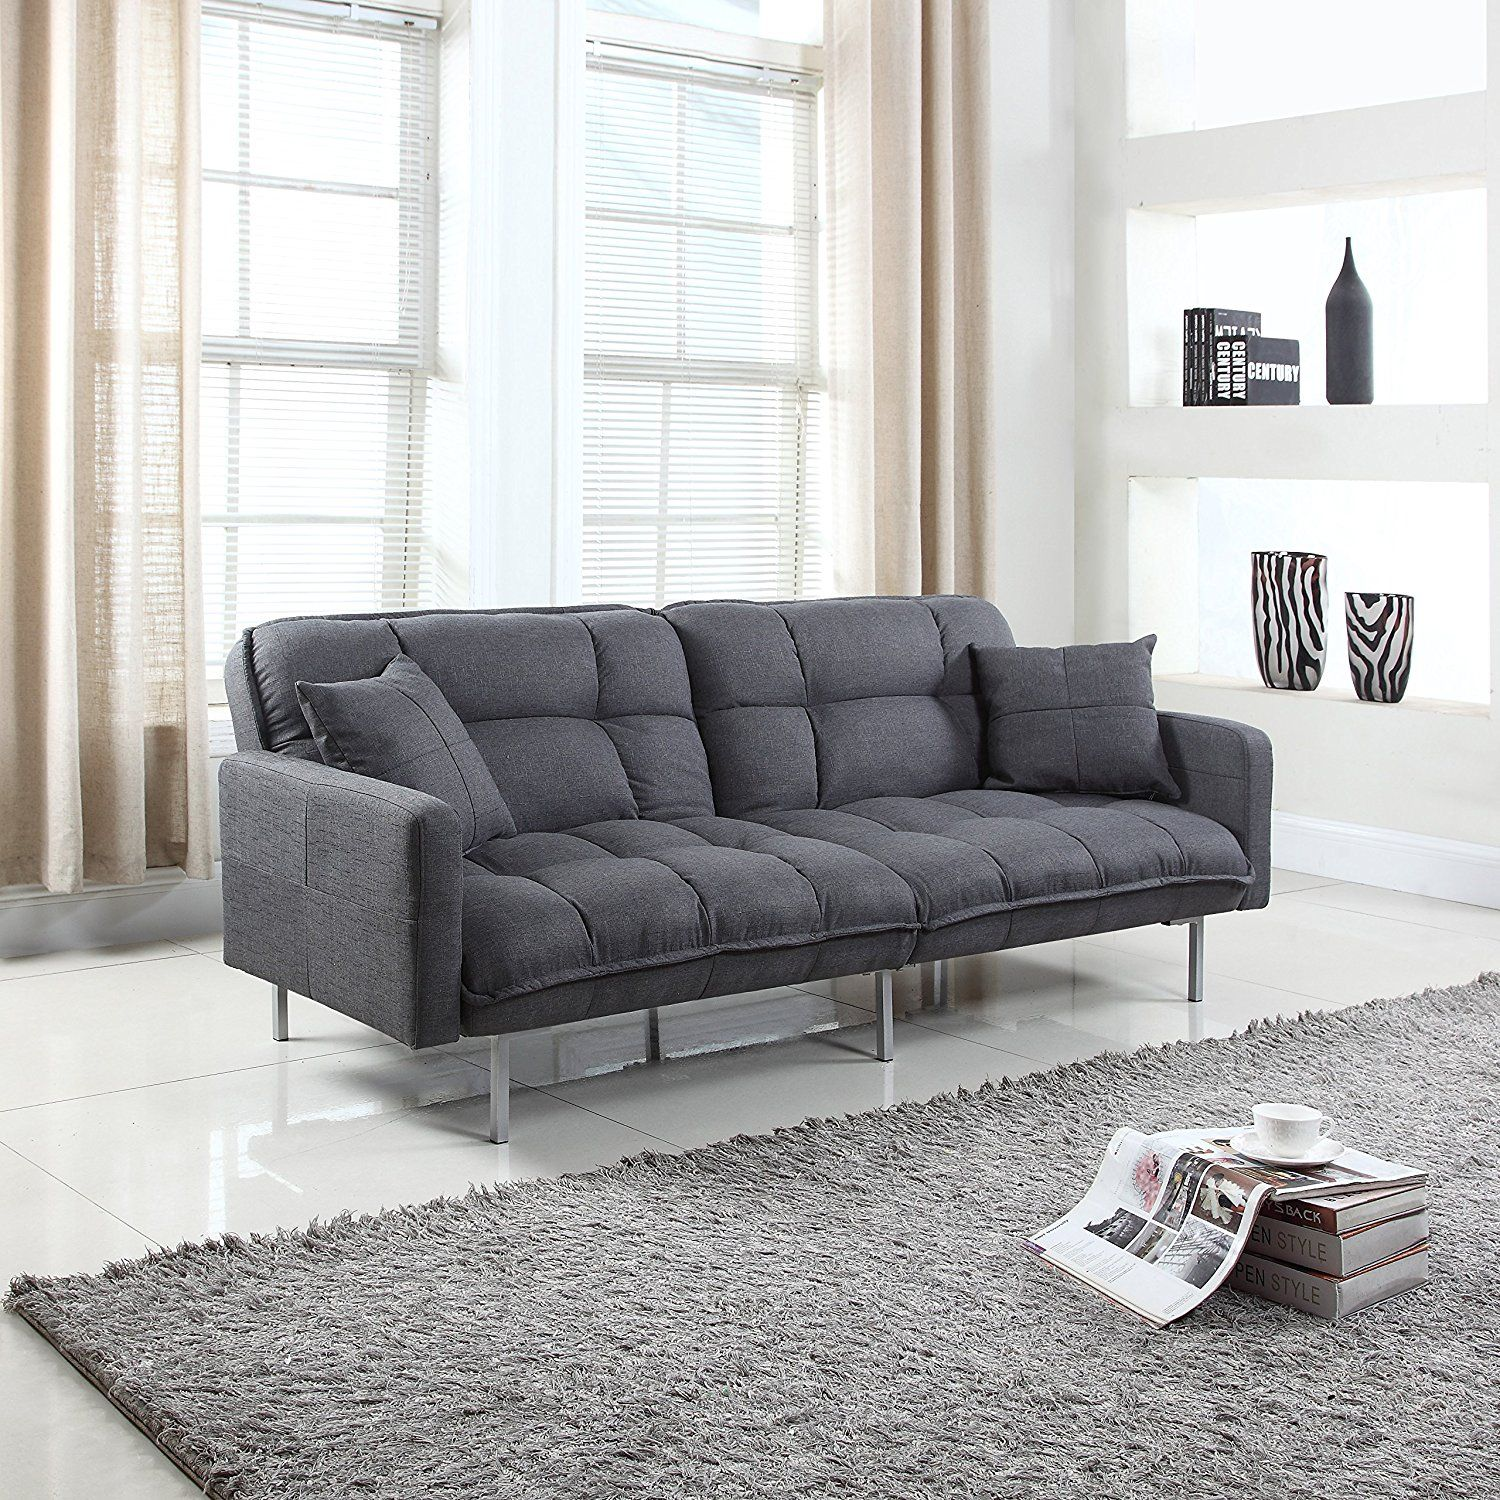 Best Sleeper Sofa.What Is The Best Sleeper Sofa And Most Comfortable Sofa Bed 2019